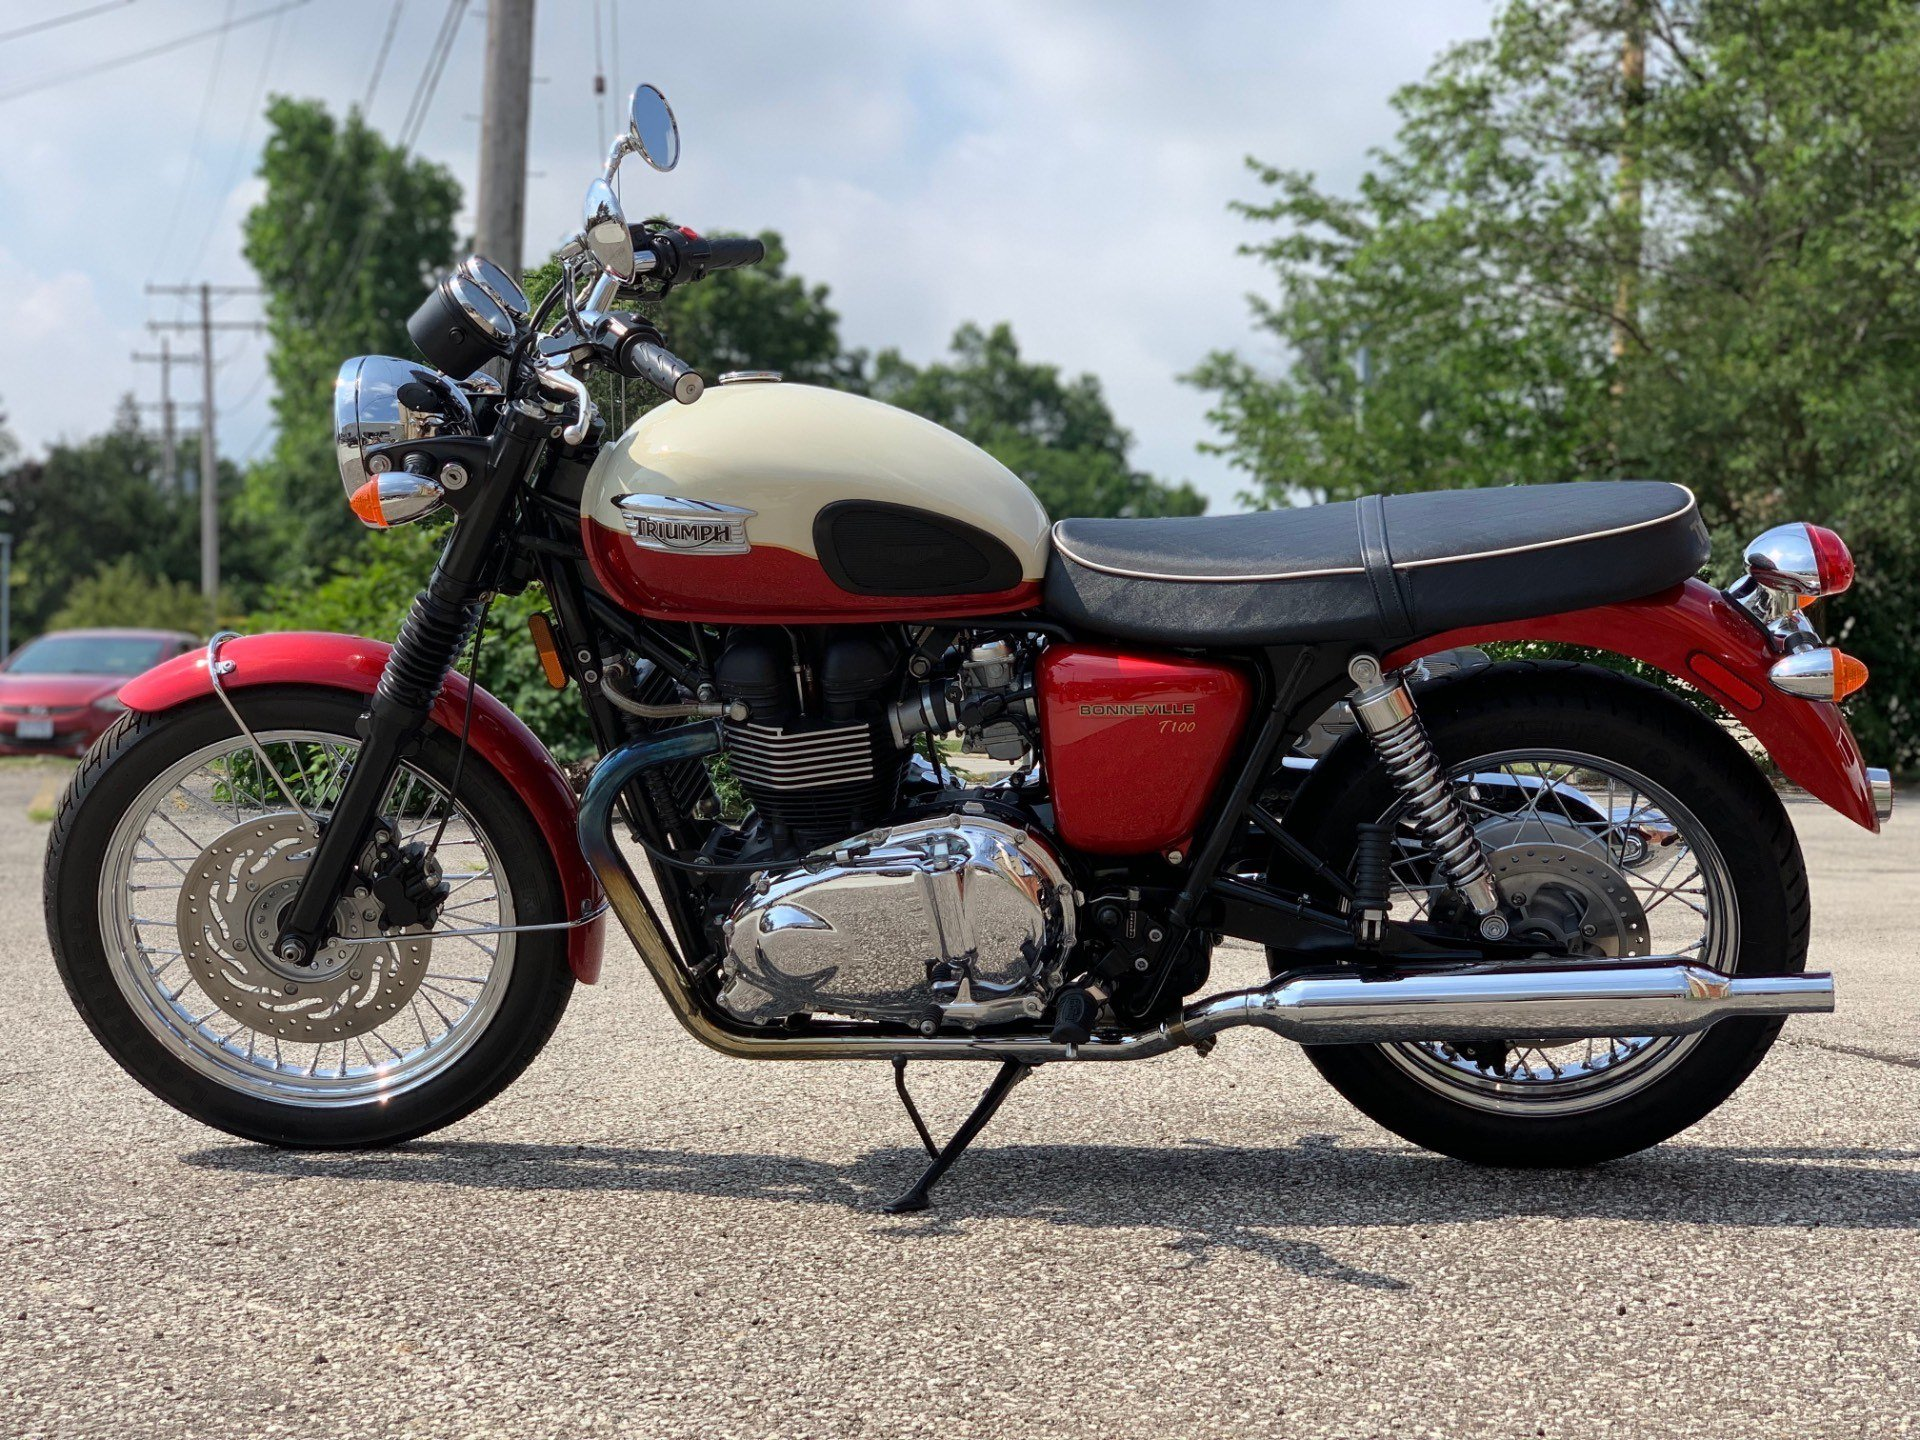 2012 Triumph Bonneville T100 - Cranberry / New England White in Cleveland, Ohio - Photo 3